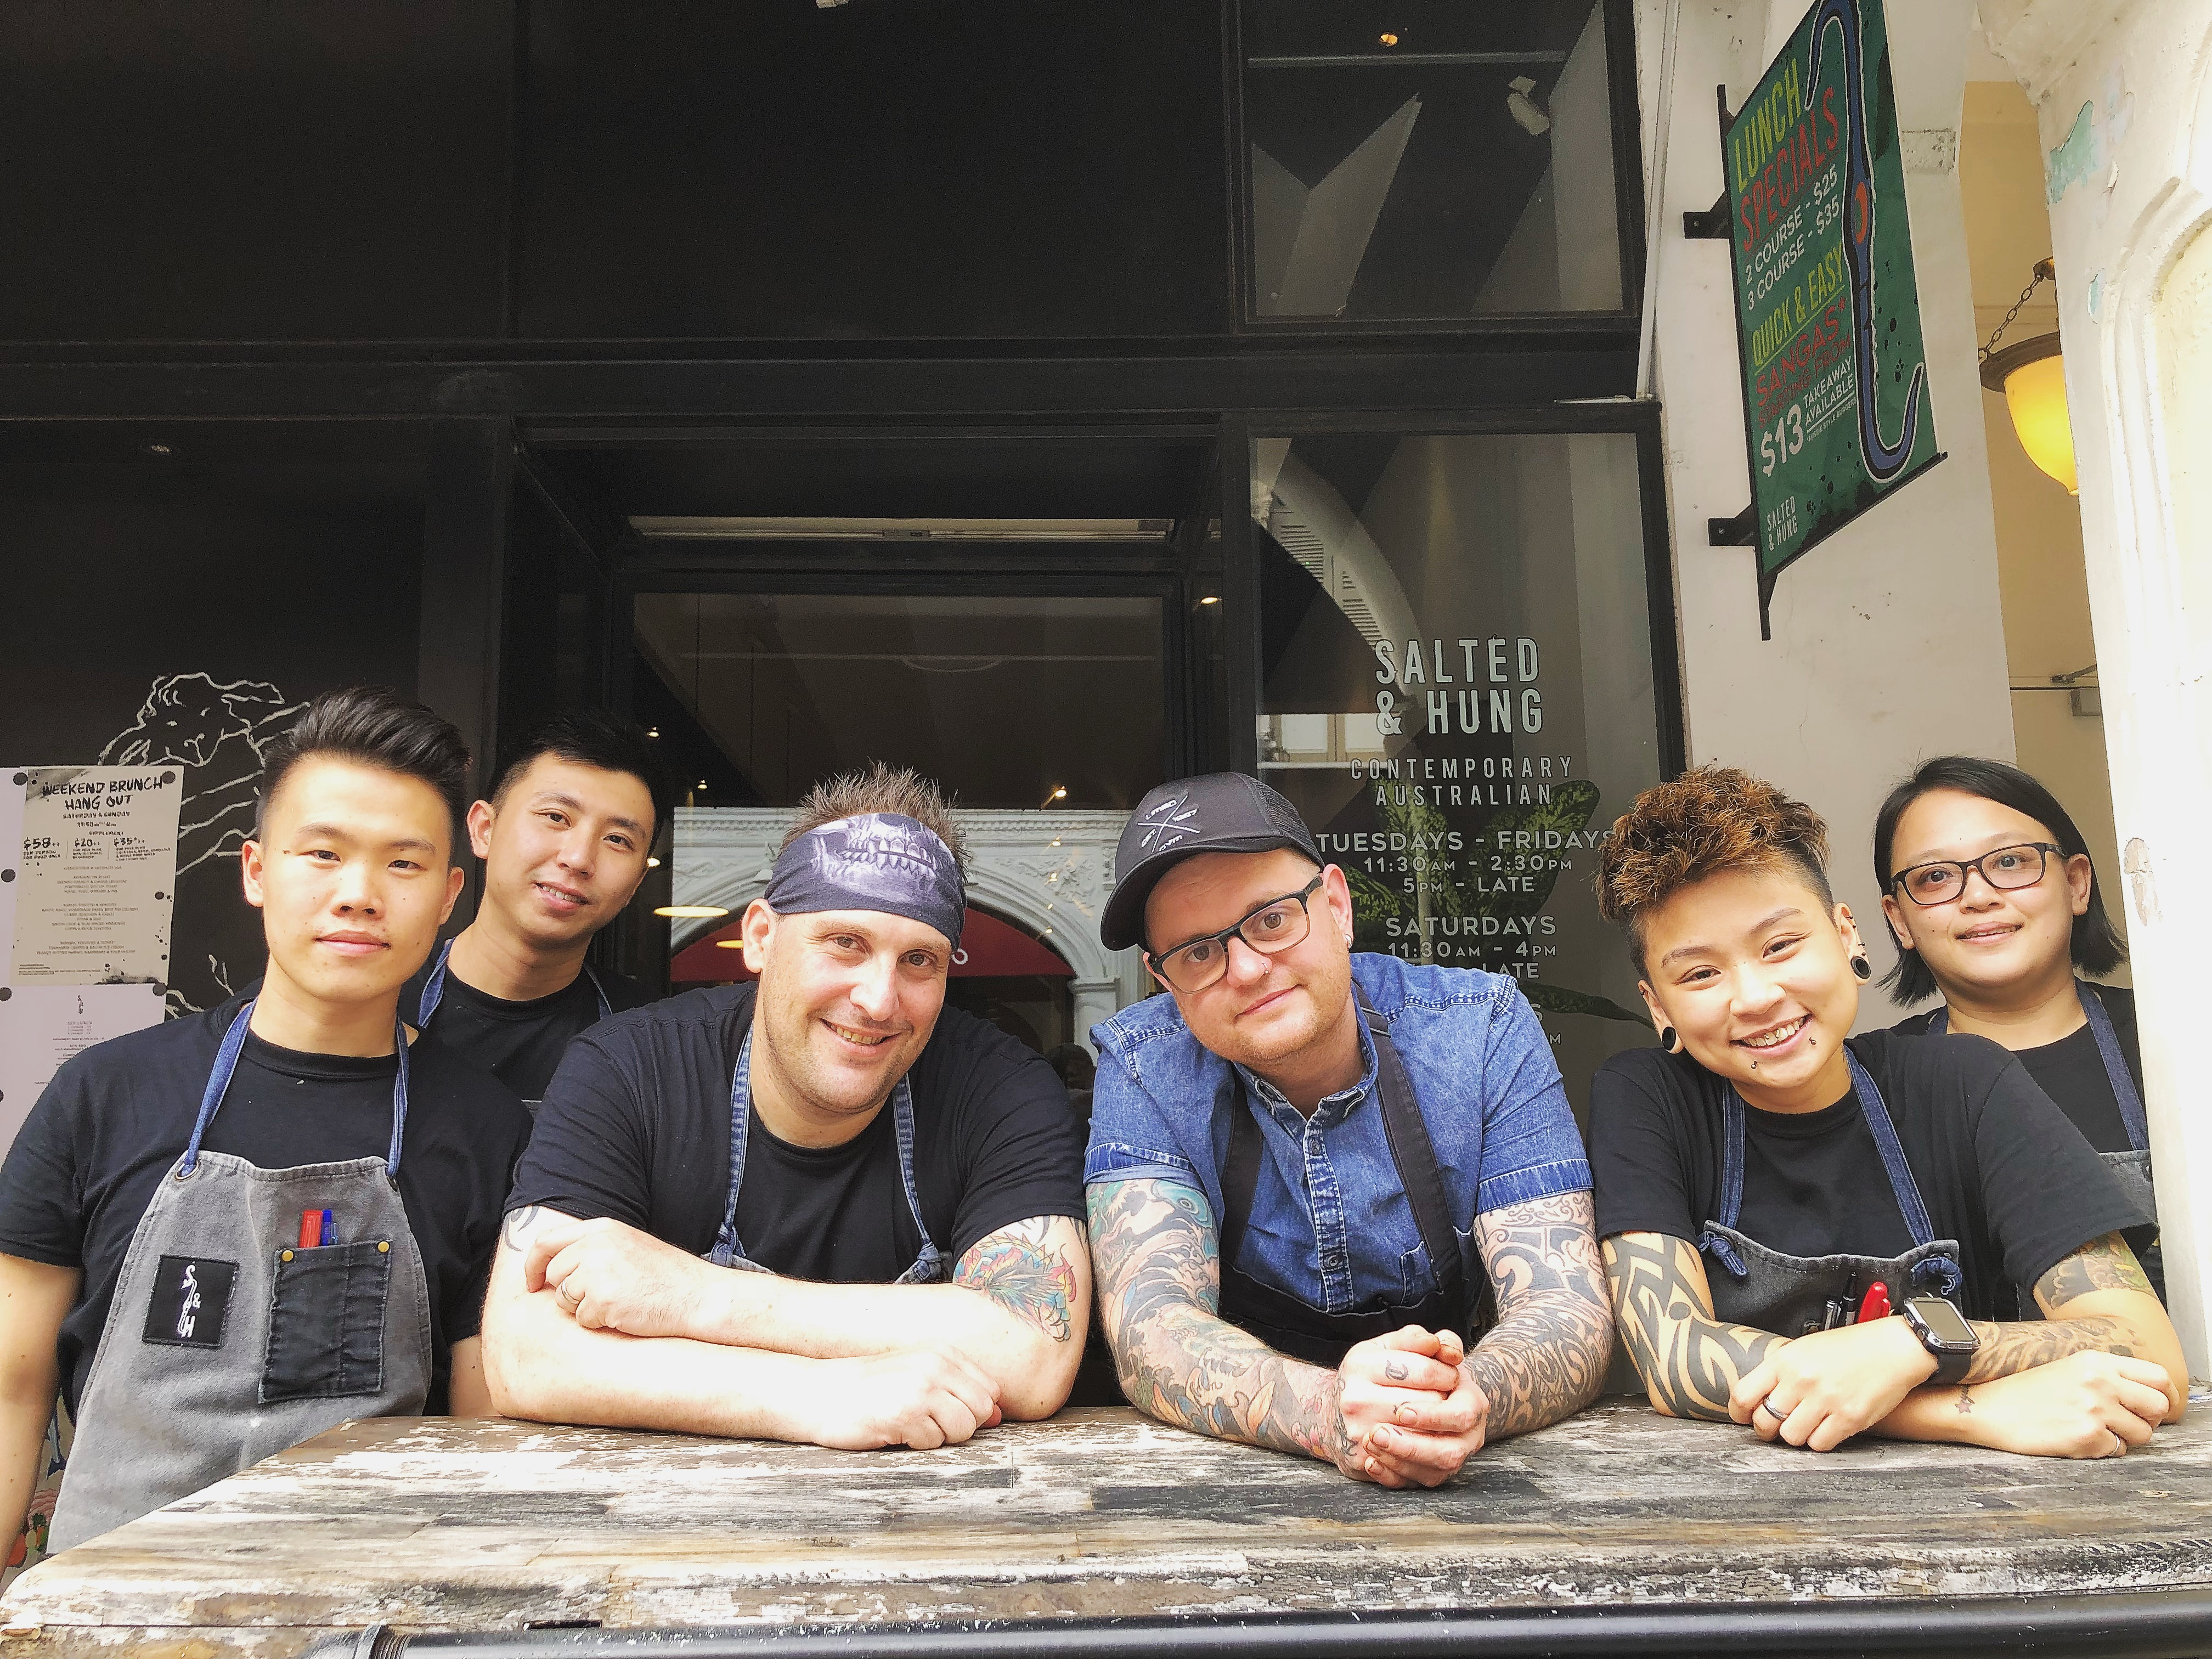 Drew Nocente, Adam Liston and staff at Salted & Hung